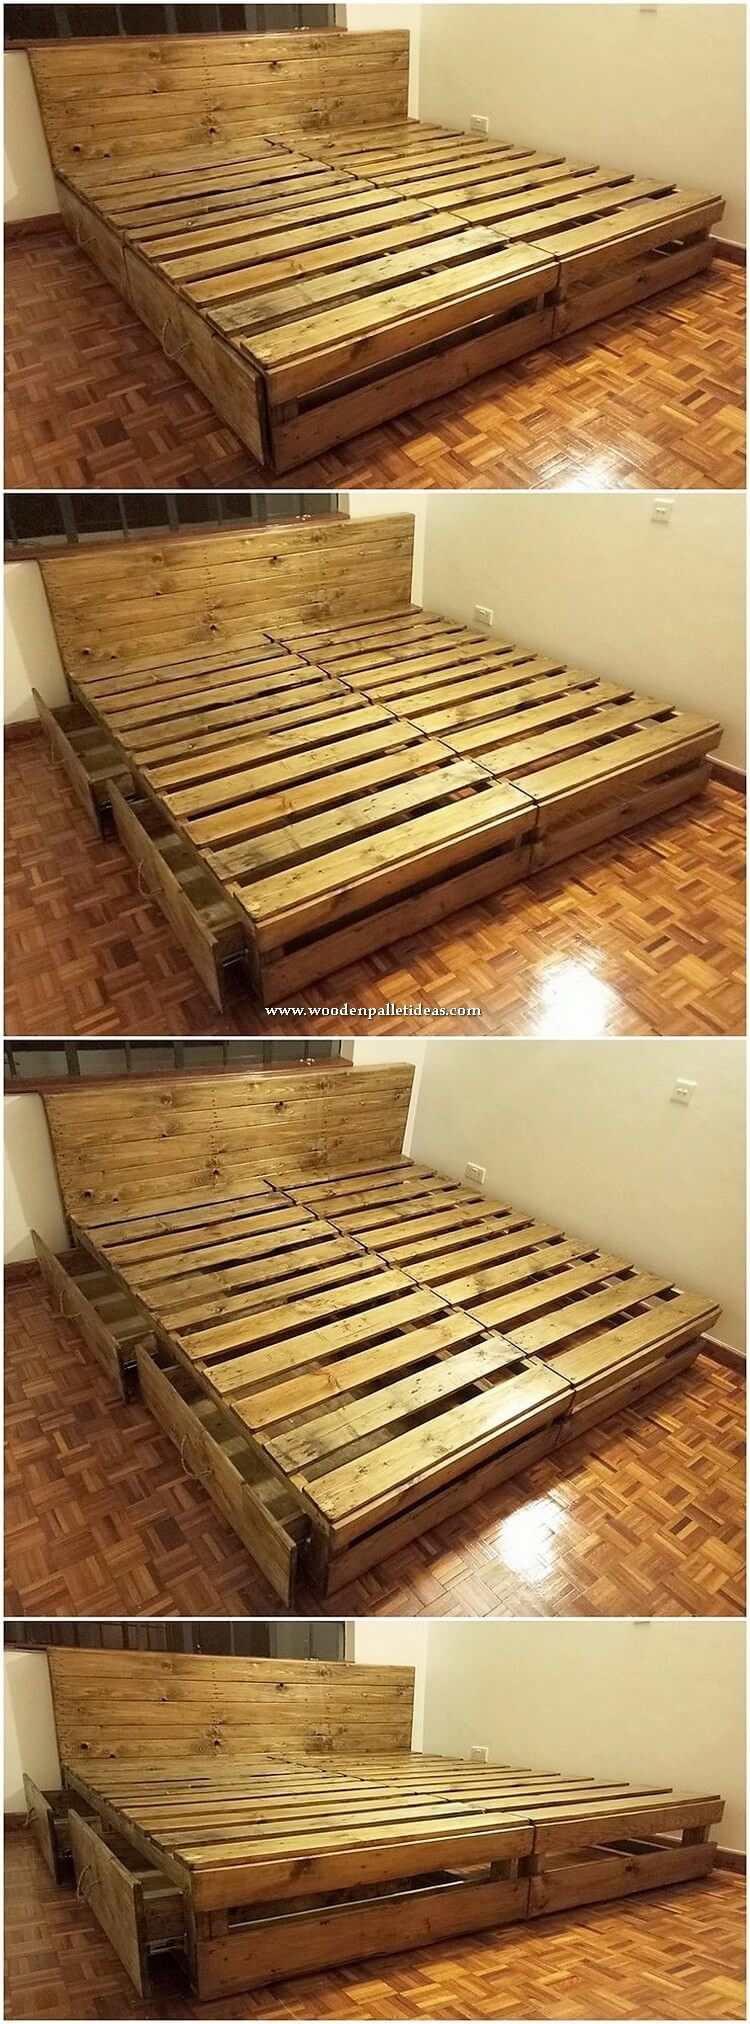 Wooden Pallet Bed with Drawers